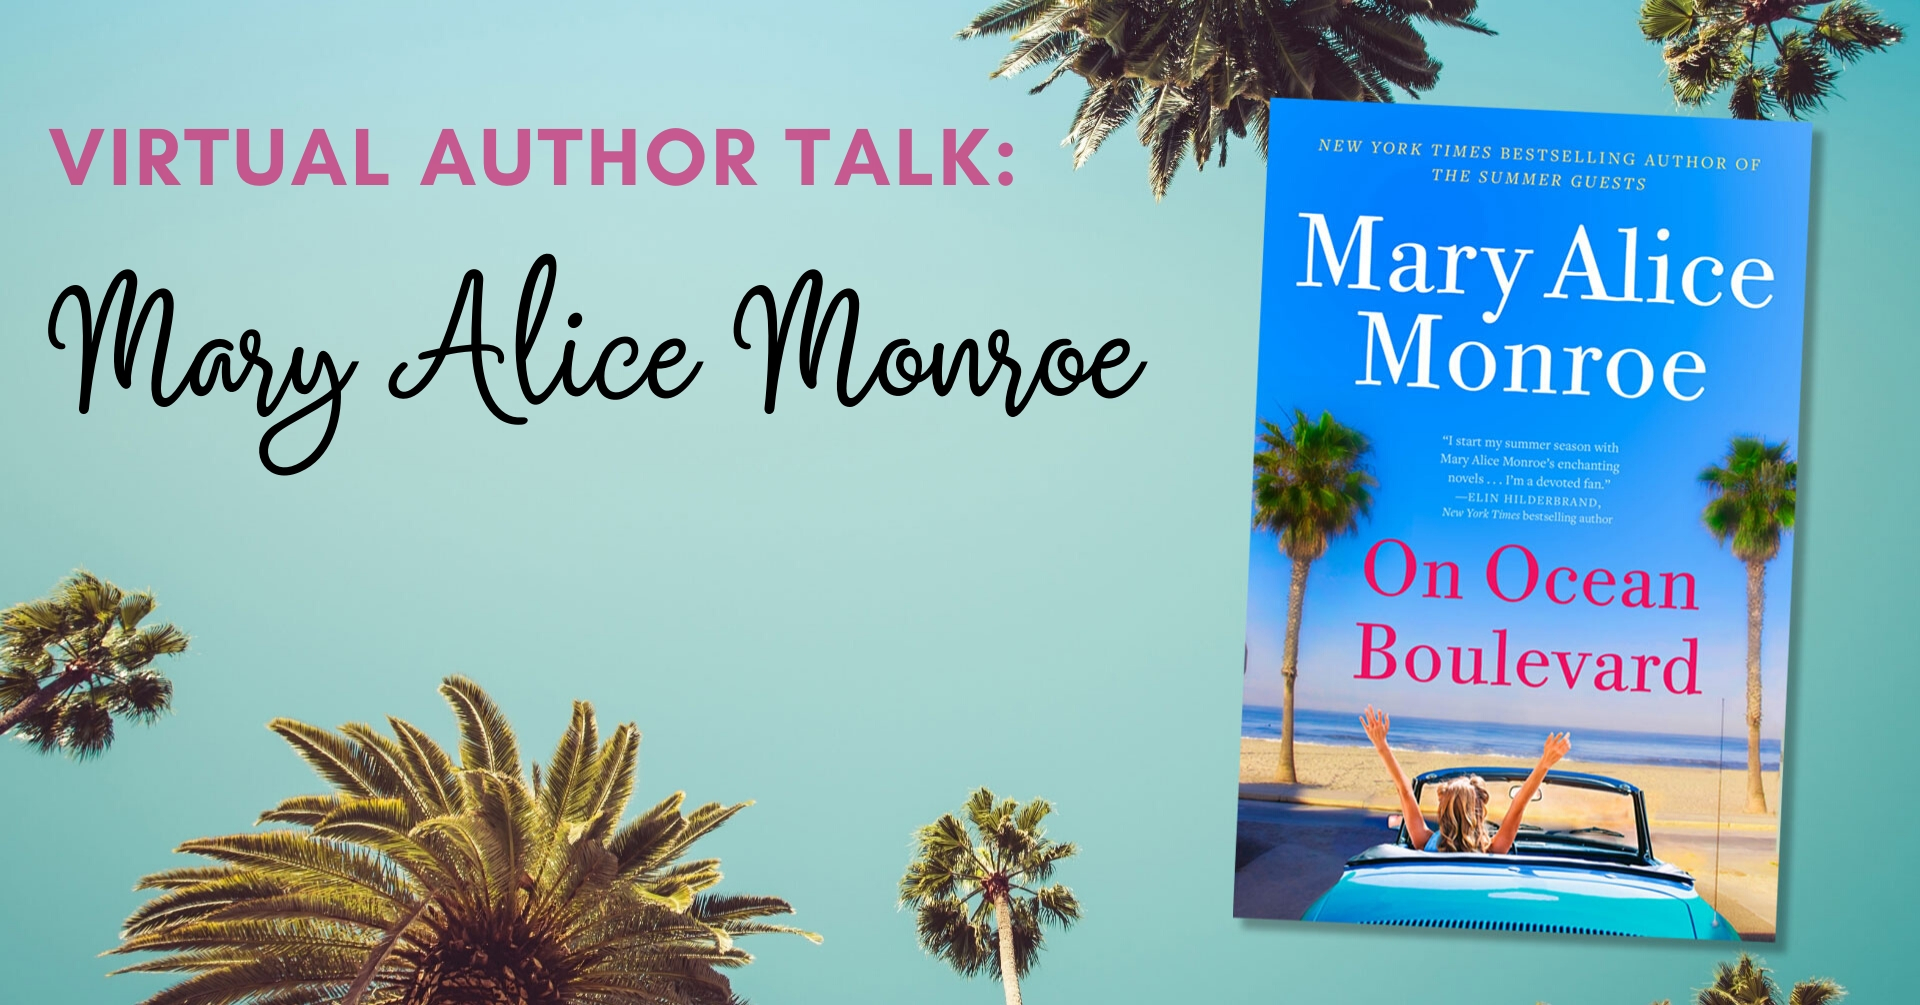 New York Times Bestselling Author Talk: Mary Alice Monroe